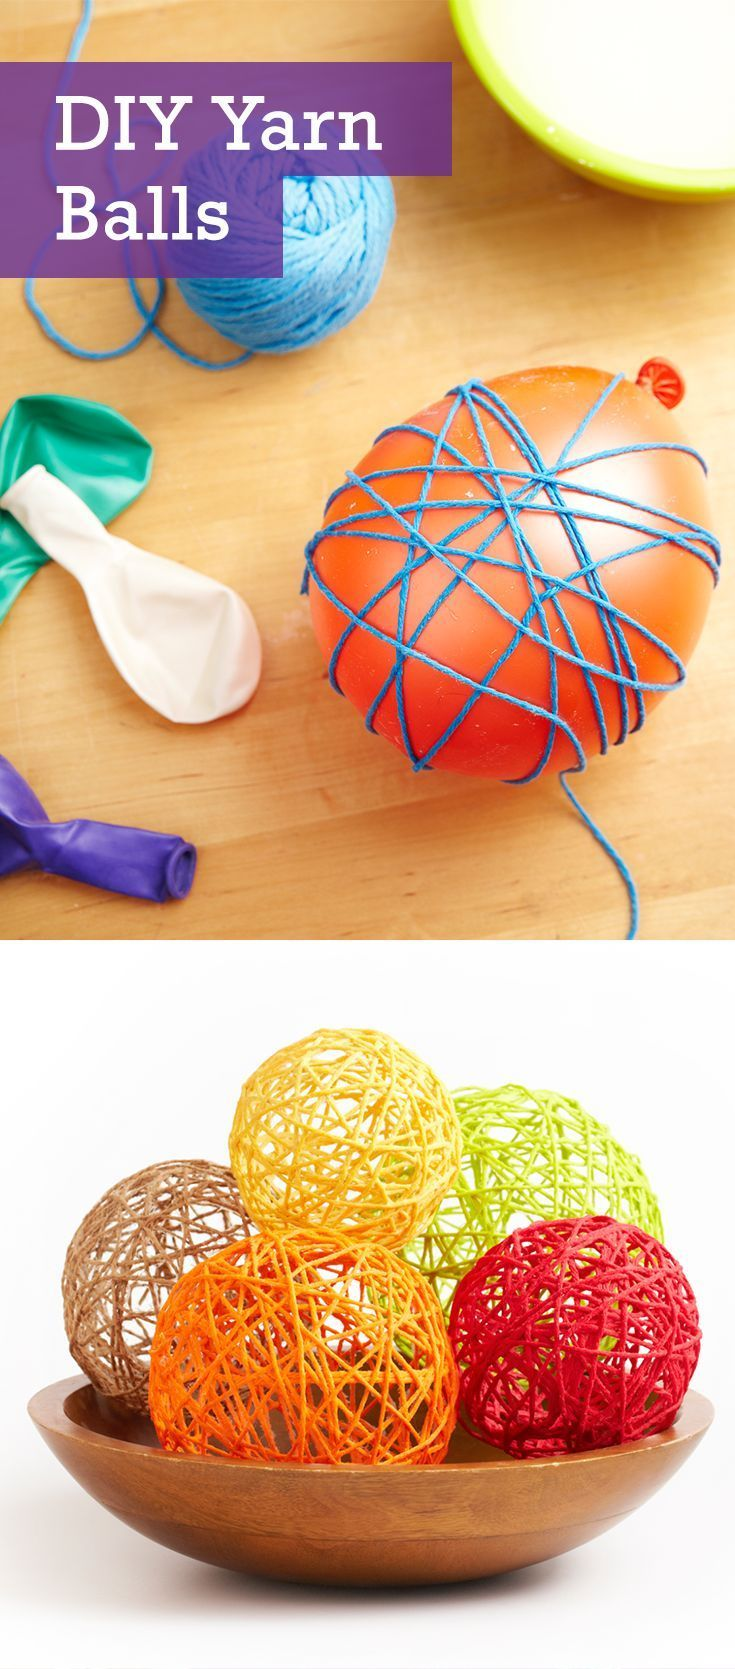 475 best wool yarn crafts for kids images on pinterest bricolage